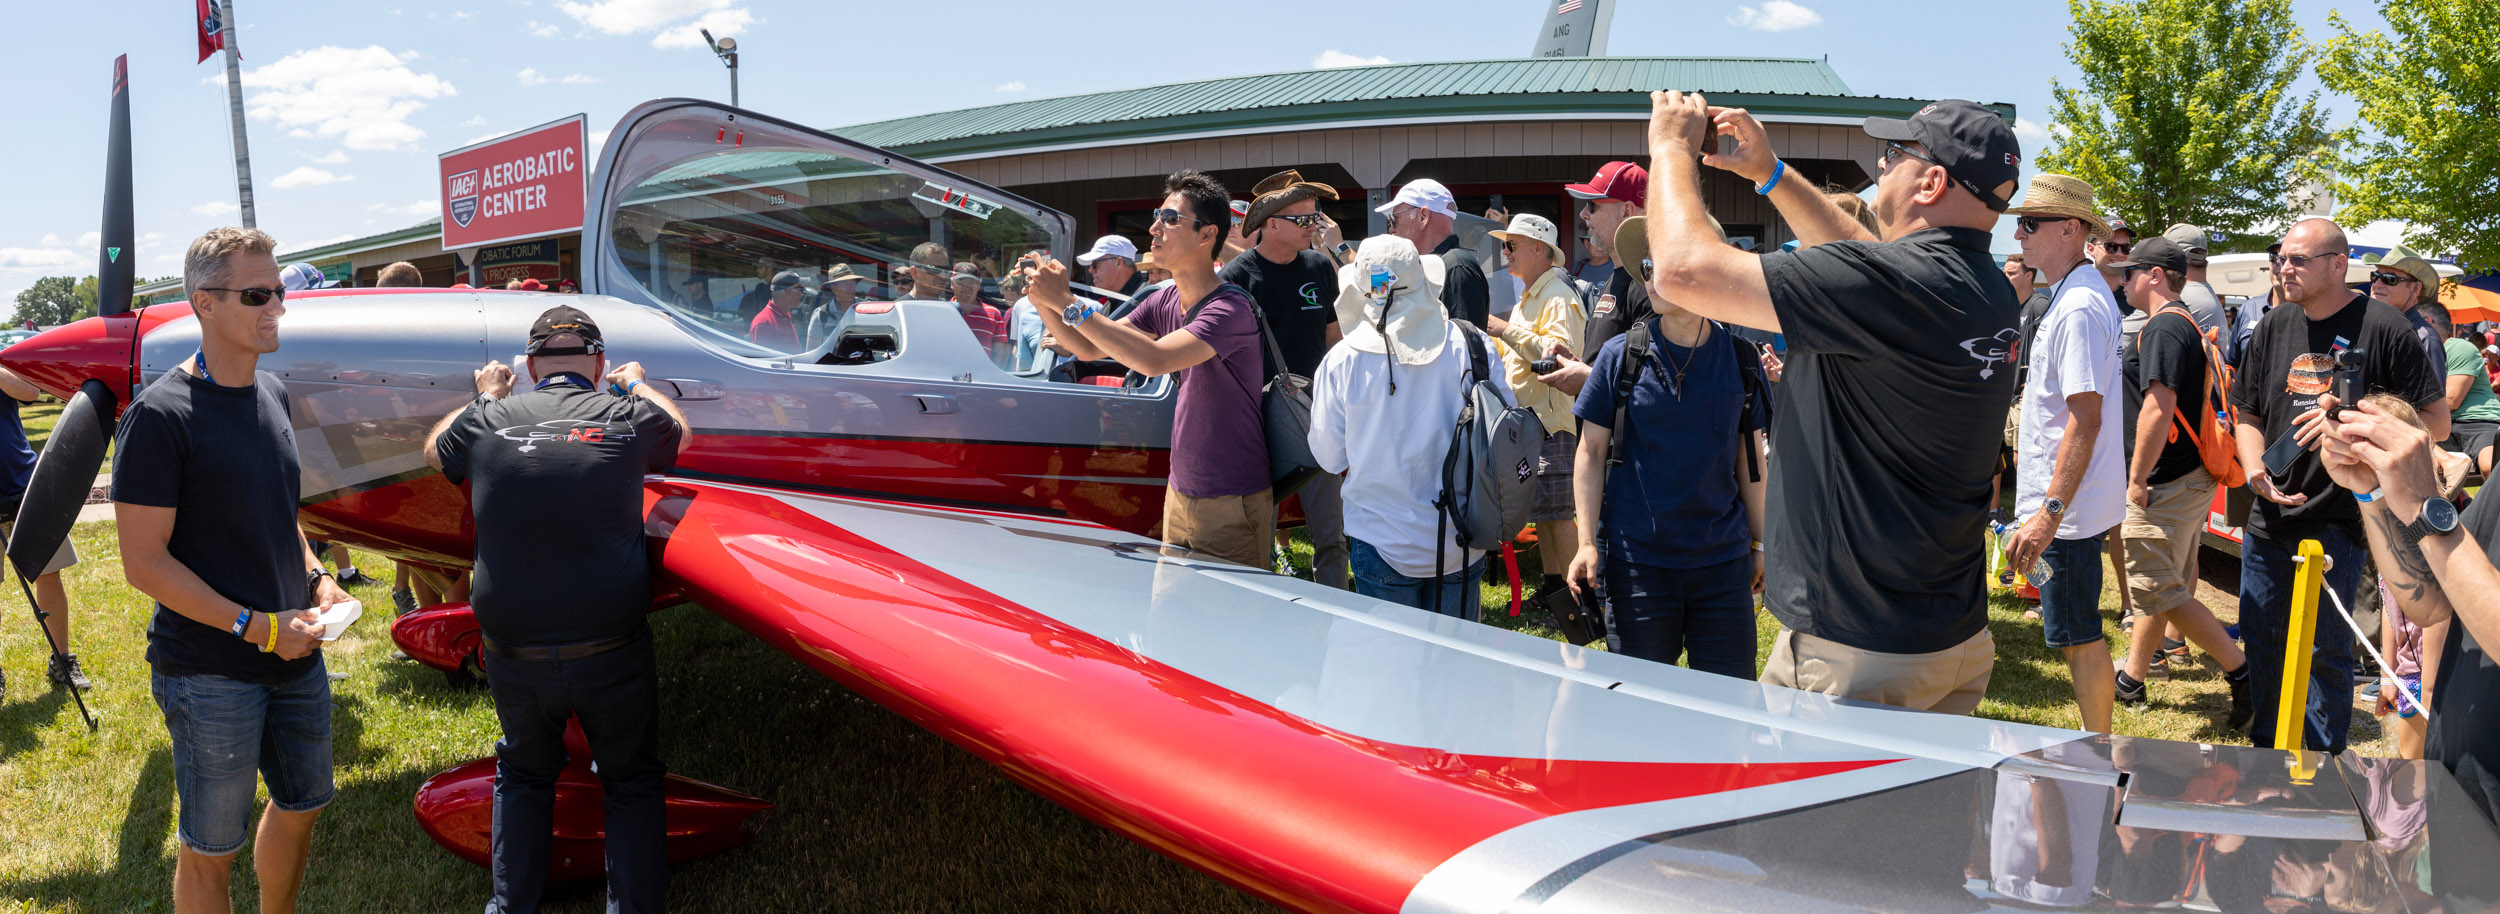 The new all-composite $450,000 Extra Aircraft NG, a departure from Walter Extra's steel frame design familiar to many aerobatic pilots, is unveiled at EAA AirVenture July 22. Photo by Evan Peers, Airspace Media.